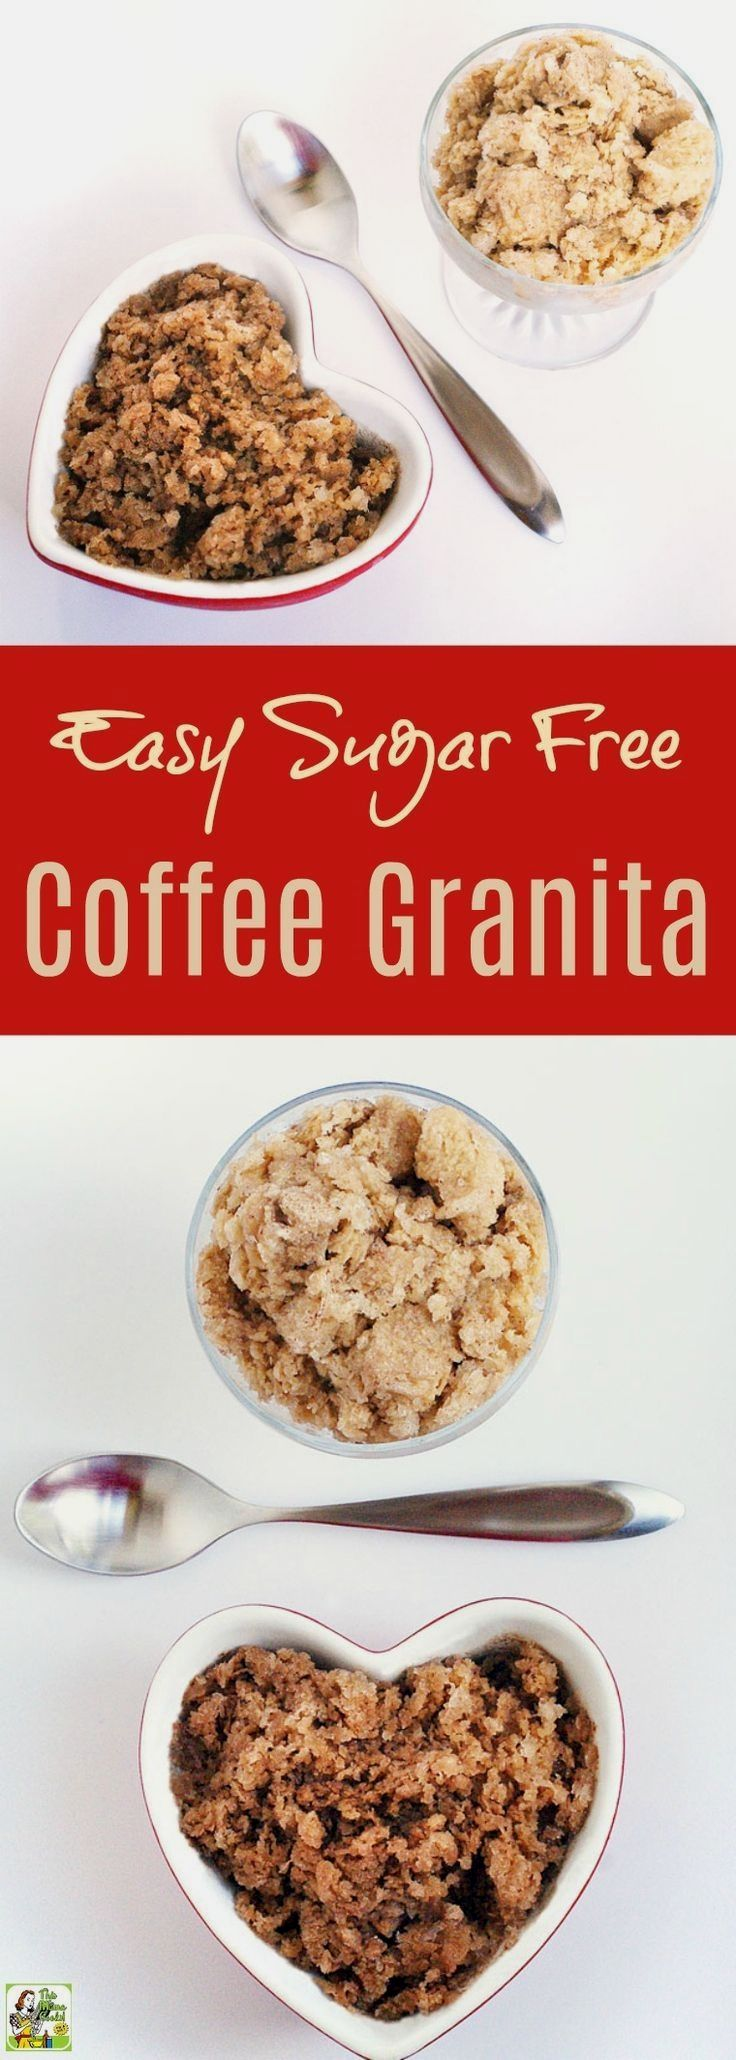 Learn how to make an  Learn how to make an Easy Sugar Free Coffee Granita recipe. Click to try this homemade coffee granita frozen dessert recipe that's sugar-free, dairy free, and flavored with chocolate or cinnamon. Low in calories, is a guilt free substitute for coffee ice